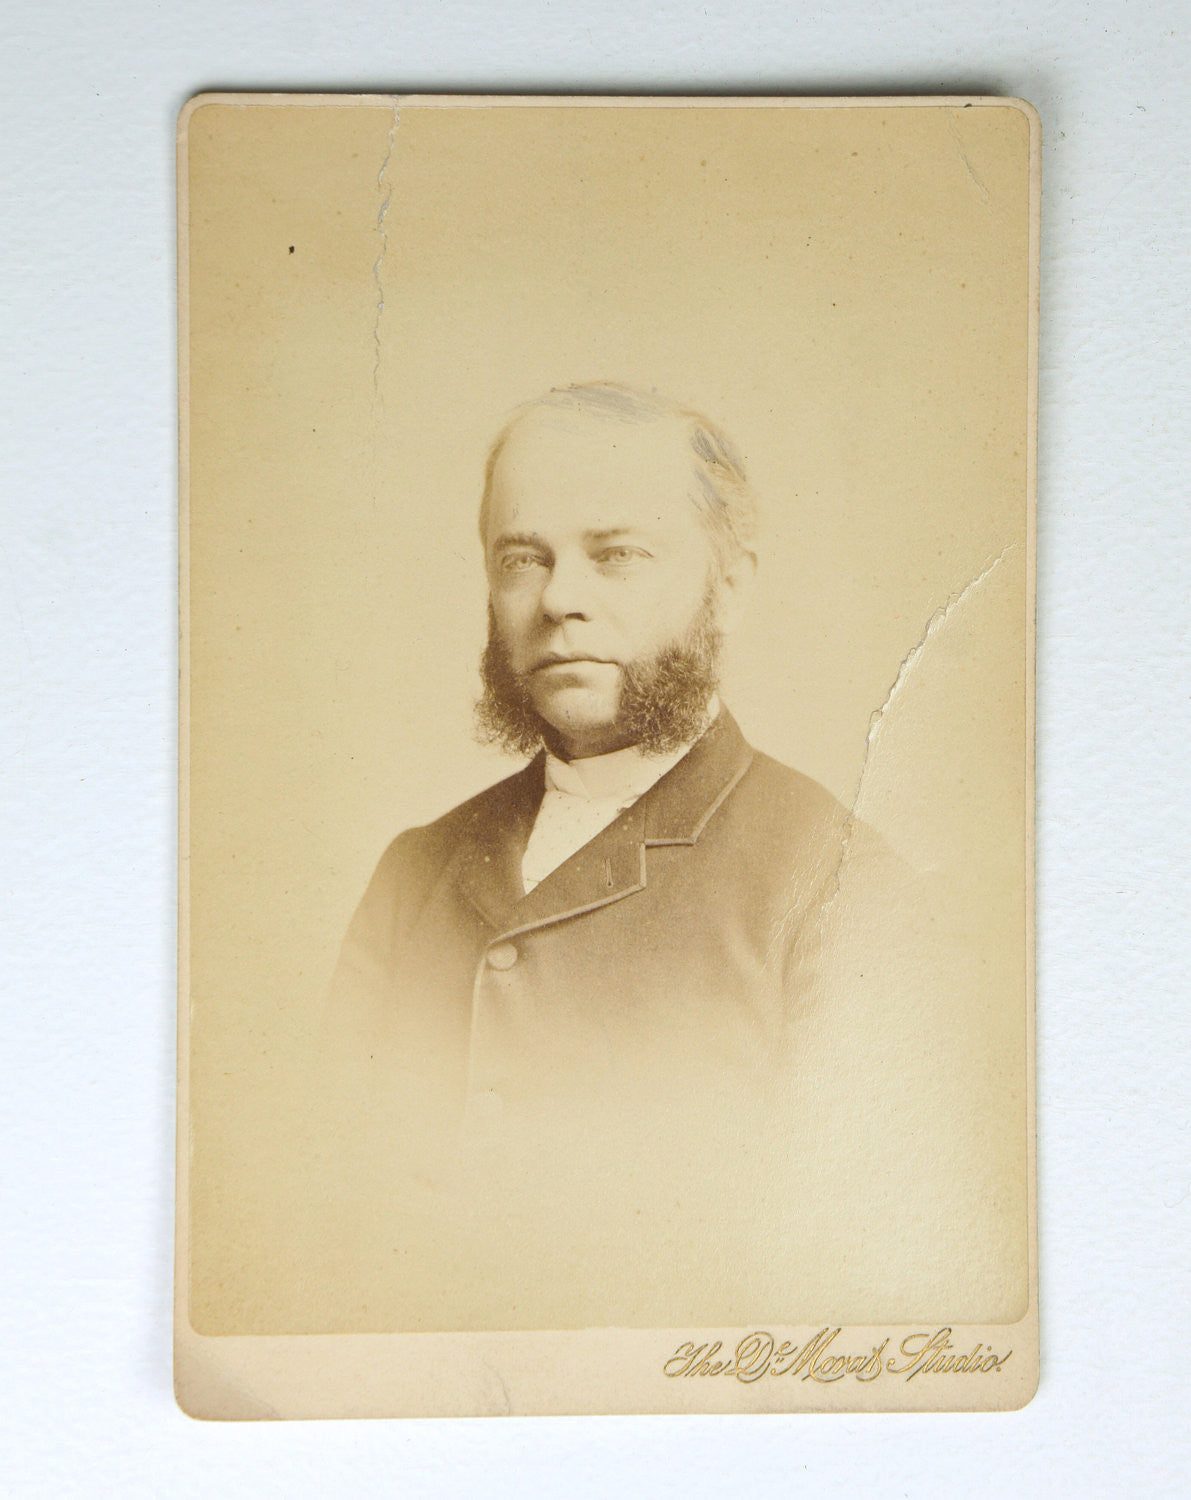 Late 1800's Cabinet Card Photo - Impressive Mutton Chops!